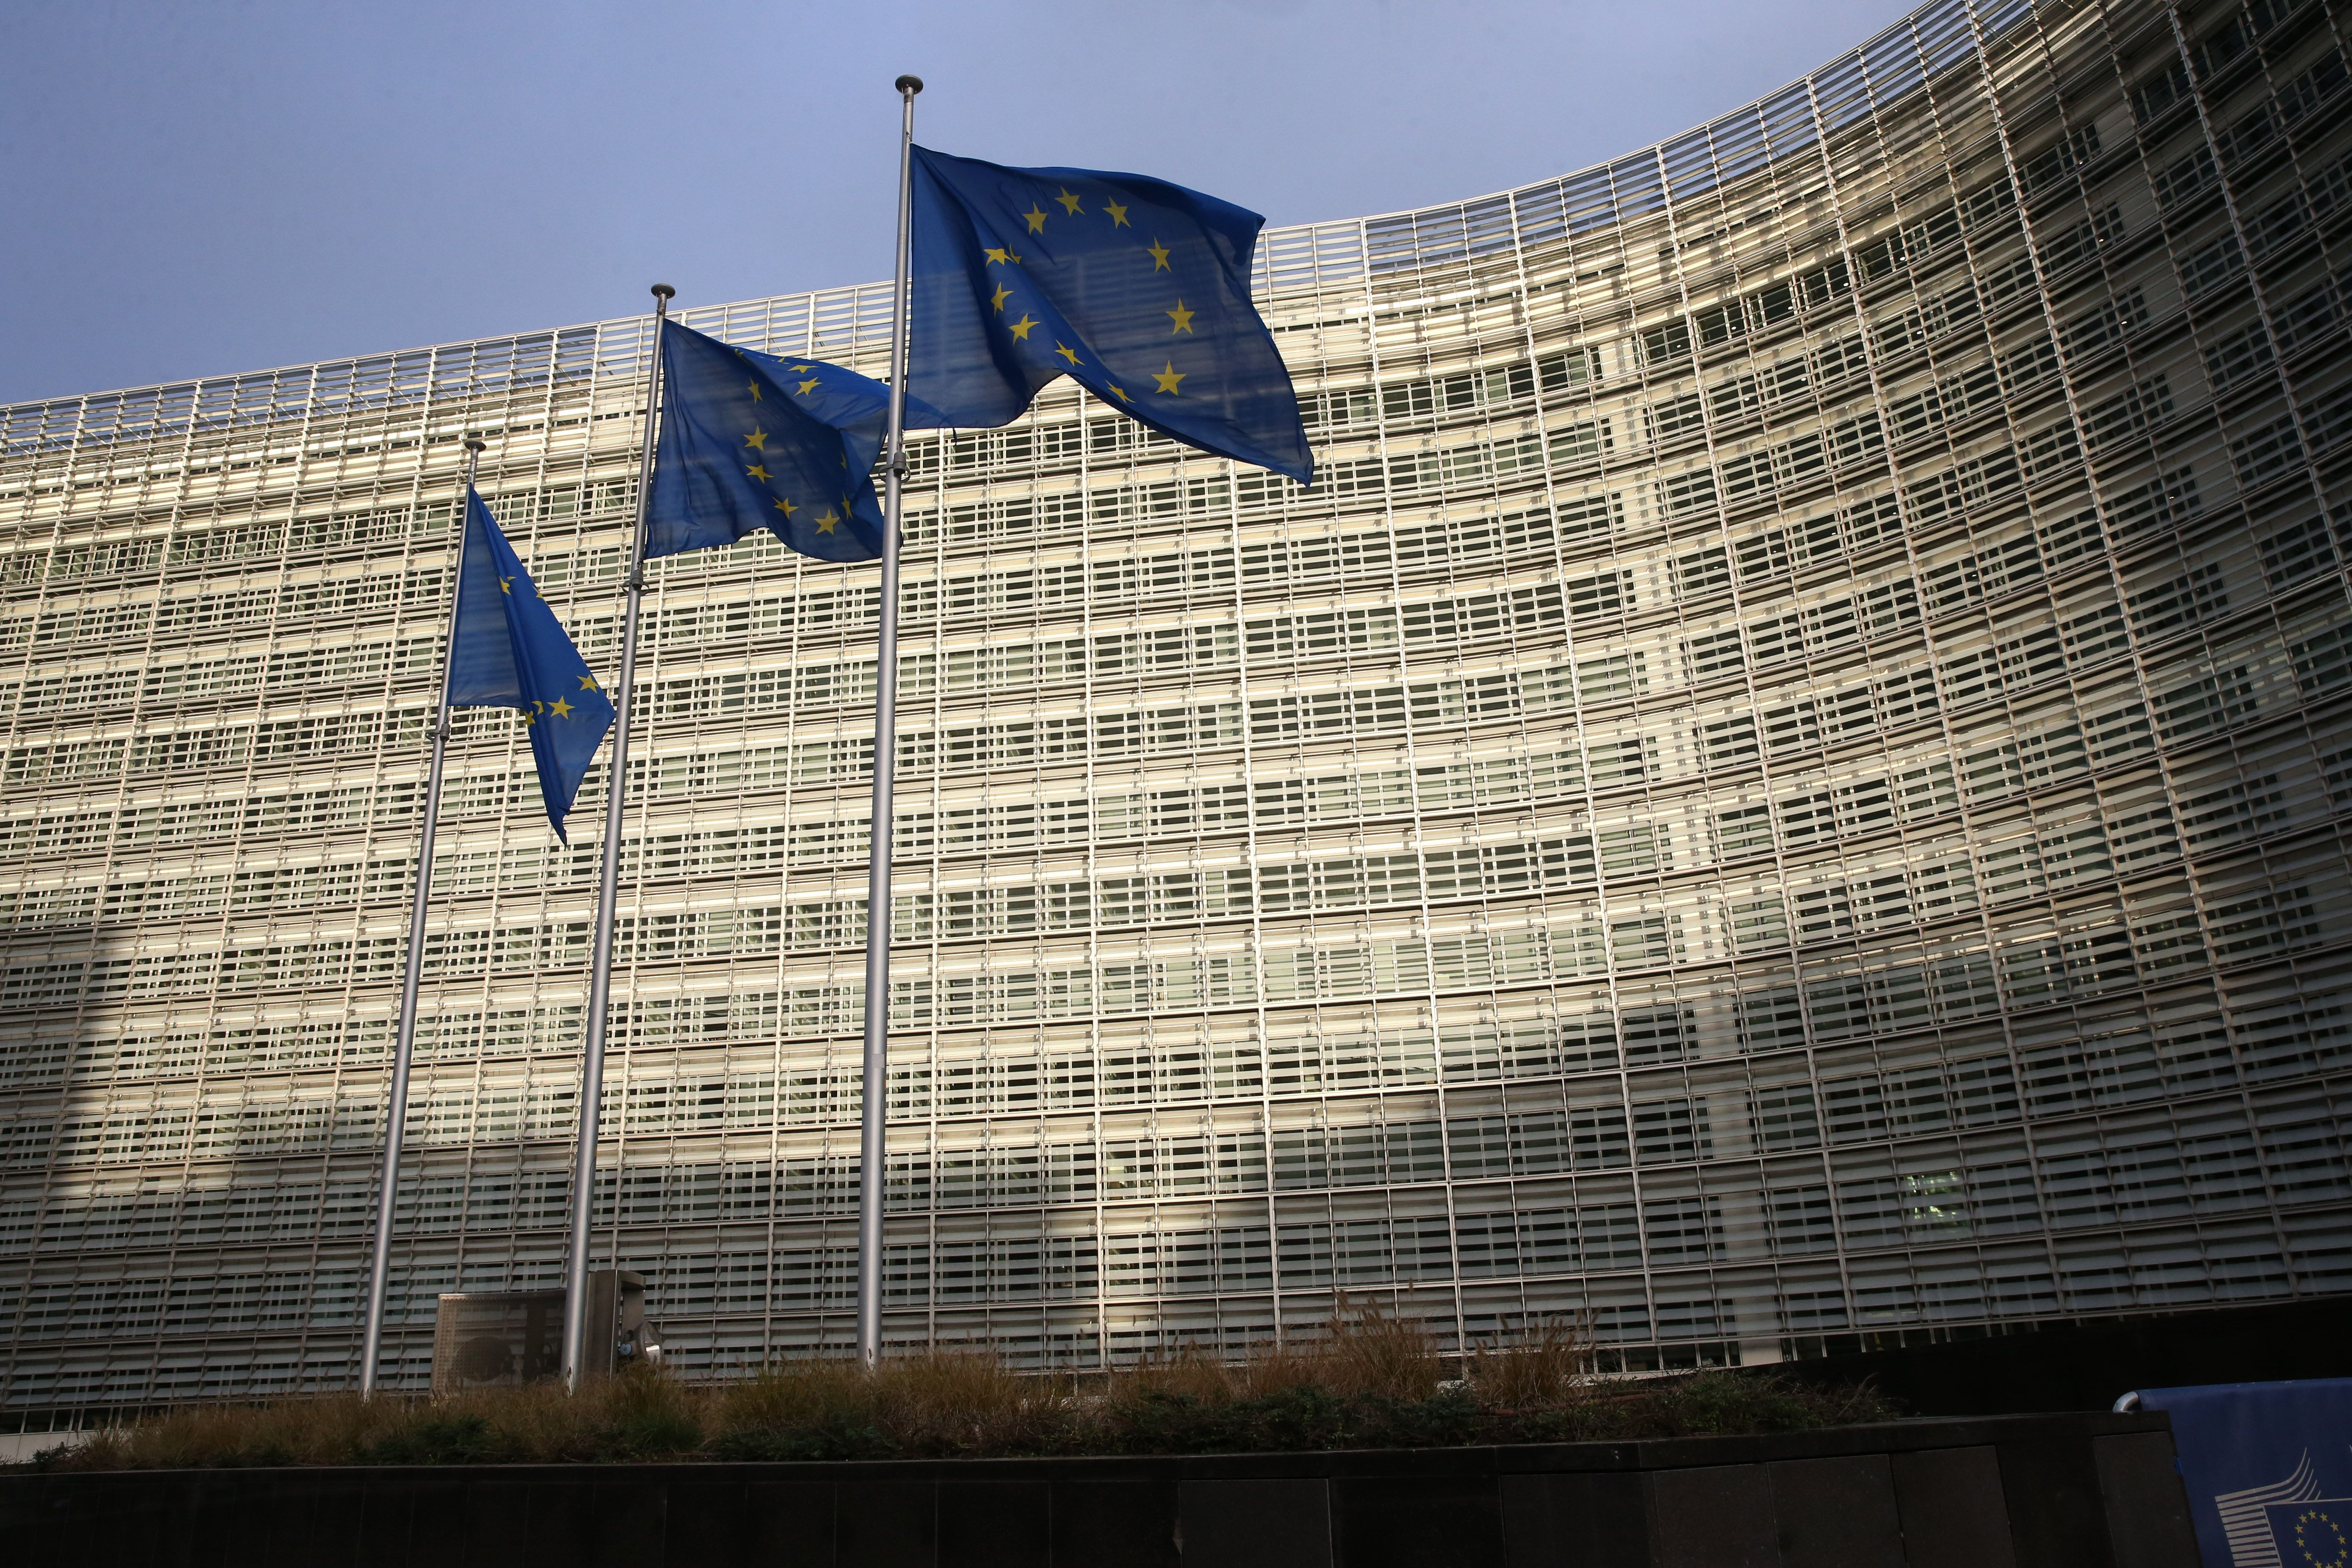 In this picture taken on December 25, 2020 flags of the European Union can be seen fluttering outside the European commission headquarters in Brussels. (Photo by François WALSCHAERTS / AFP) (Photo by FRANCOIS WALSCHAERTS/AFP via Getty Images)